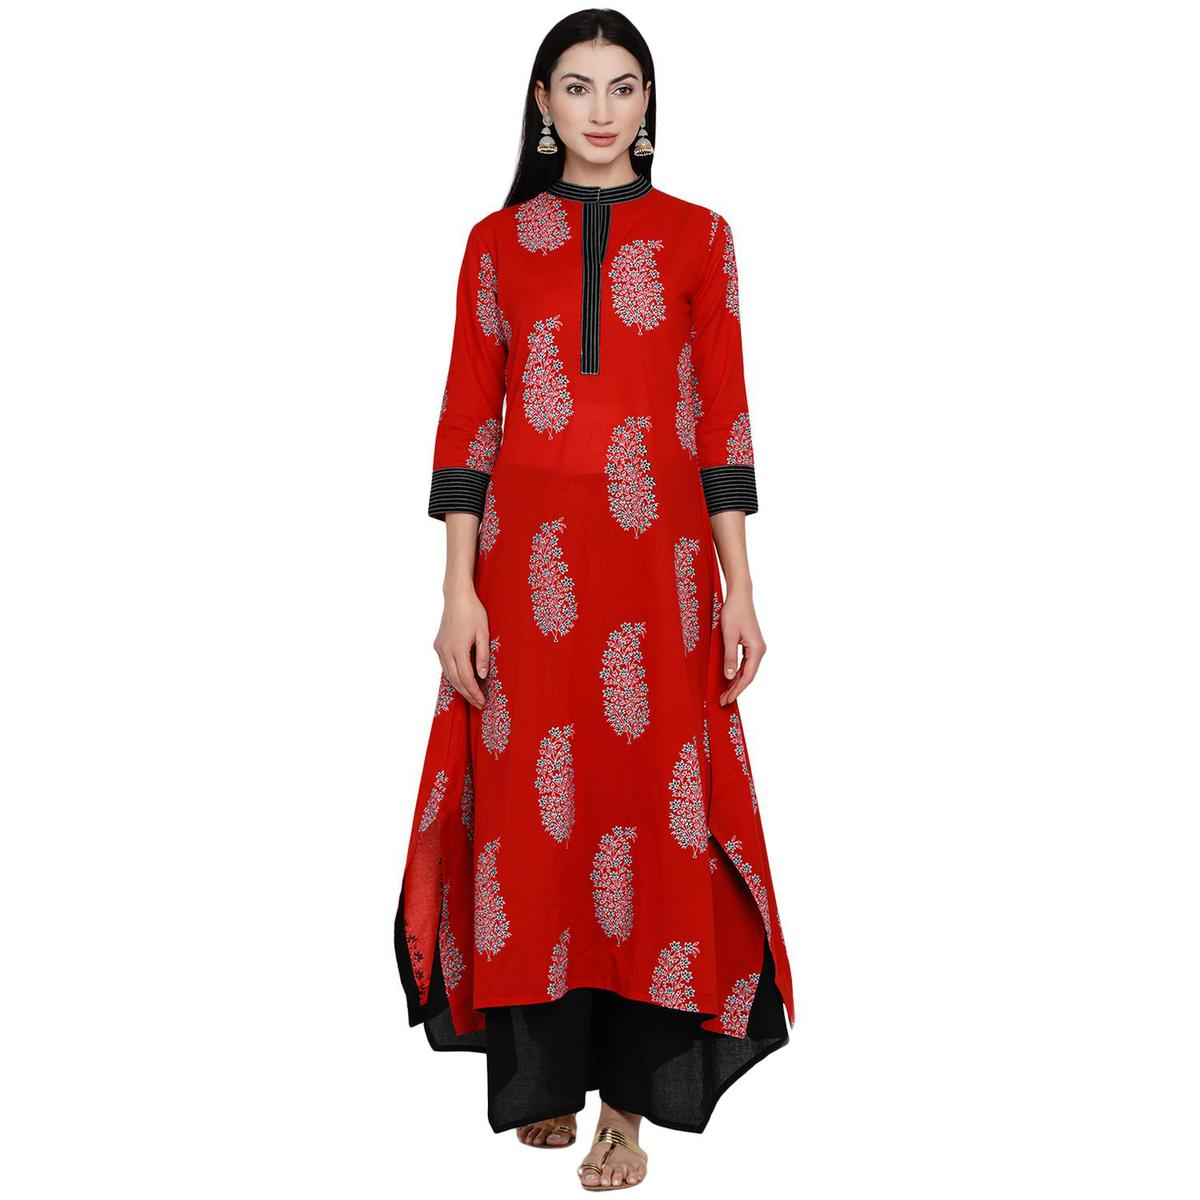 Fabnest - Women Red Colored Thread Work Floral Paisley Print Cotton Assymetric Kurti